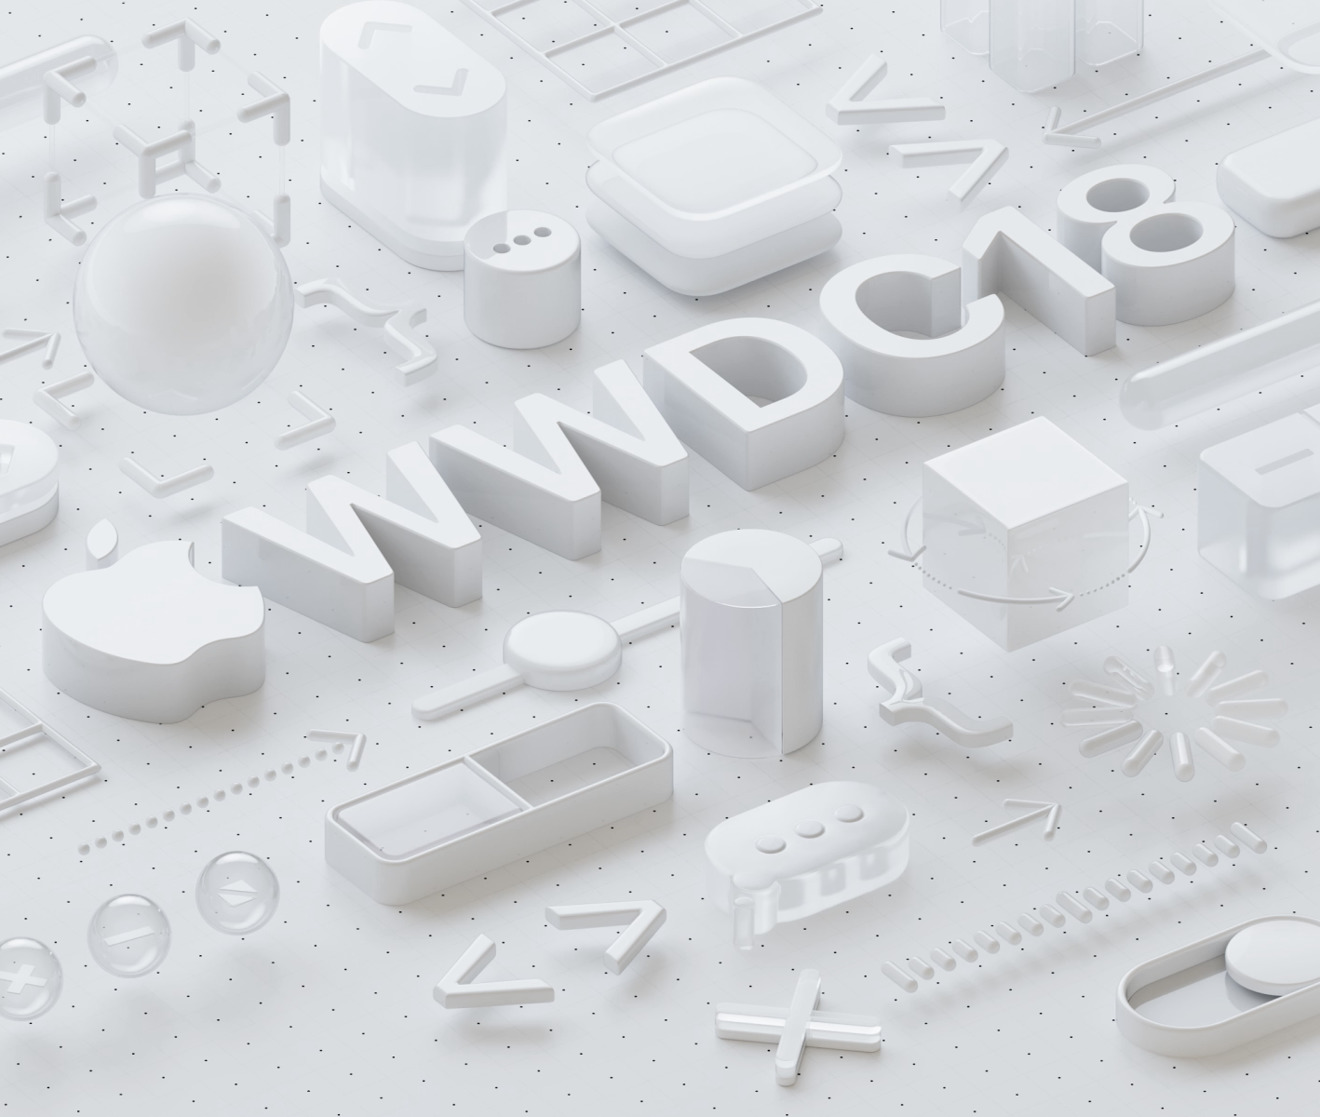 A look at Apple's secretive strategies set to unfold at WWDC 2018